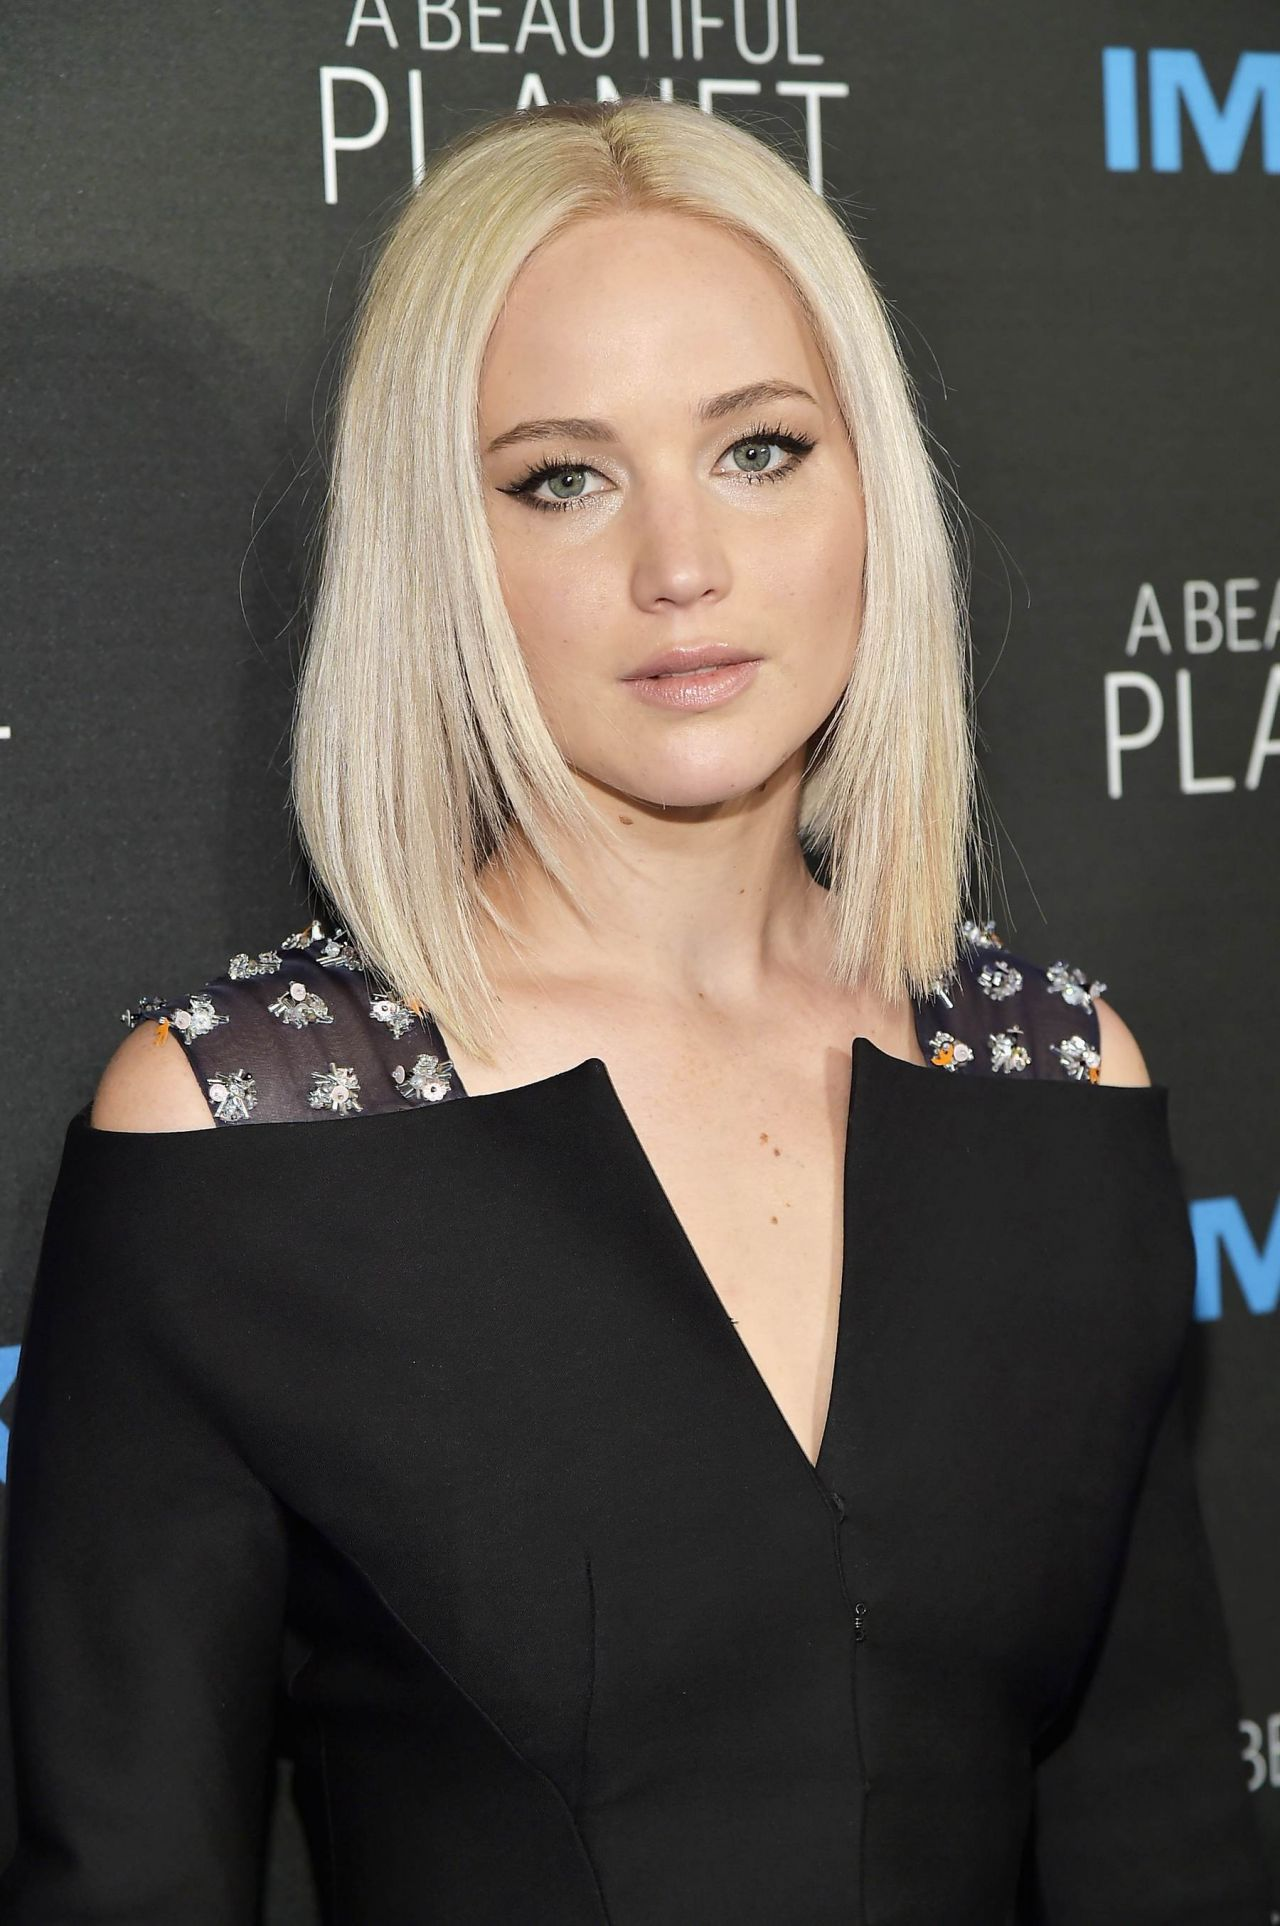 Jennifer Lawrence A Beautiful Planet Premiere In New York